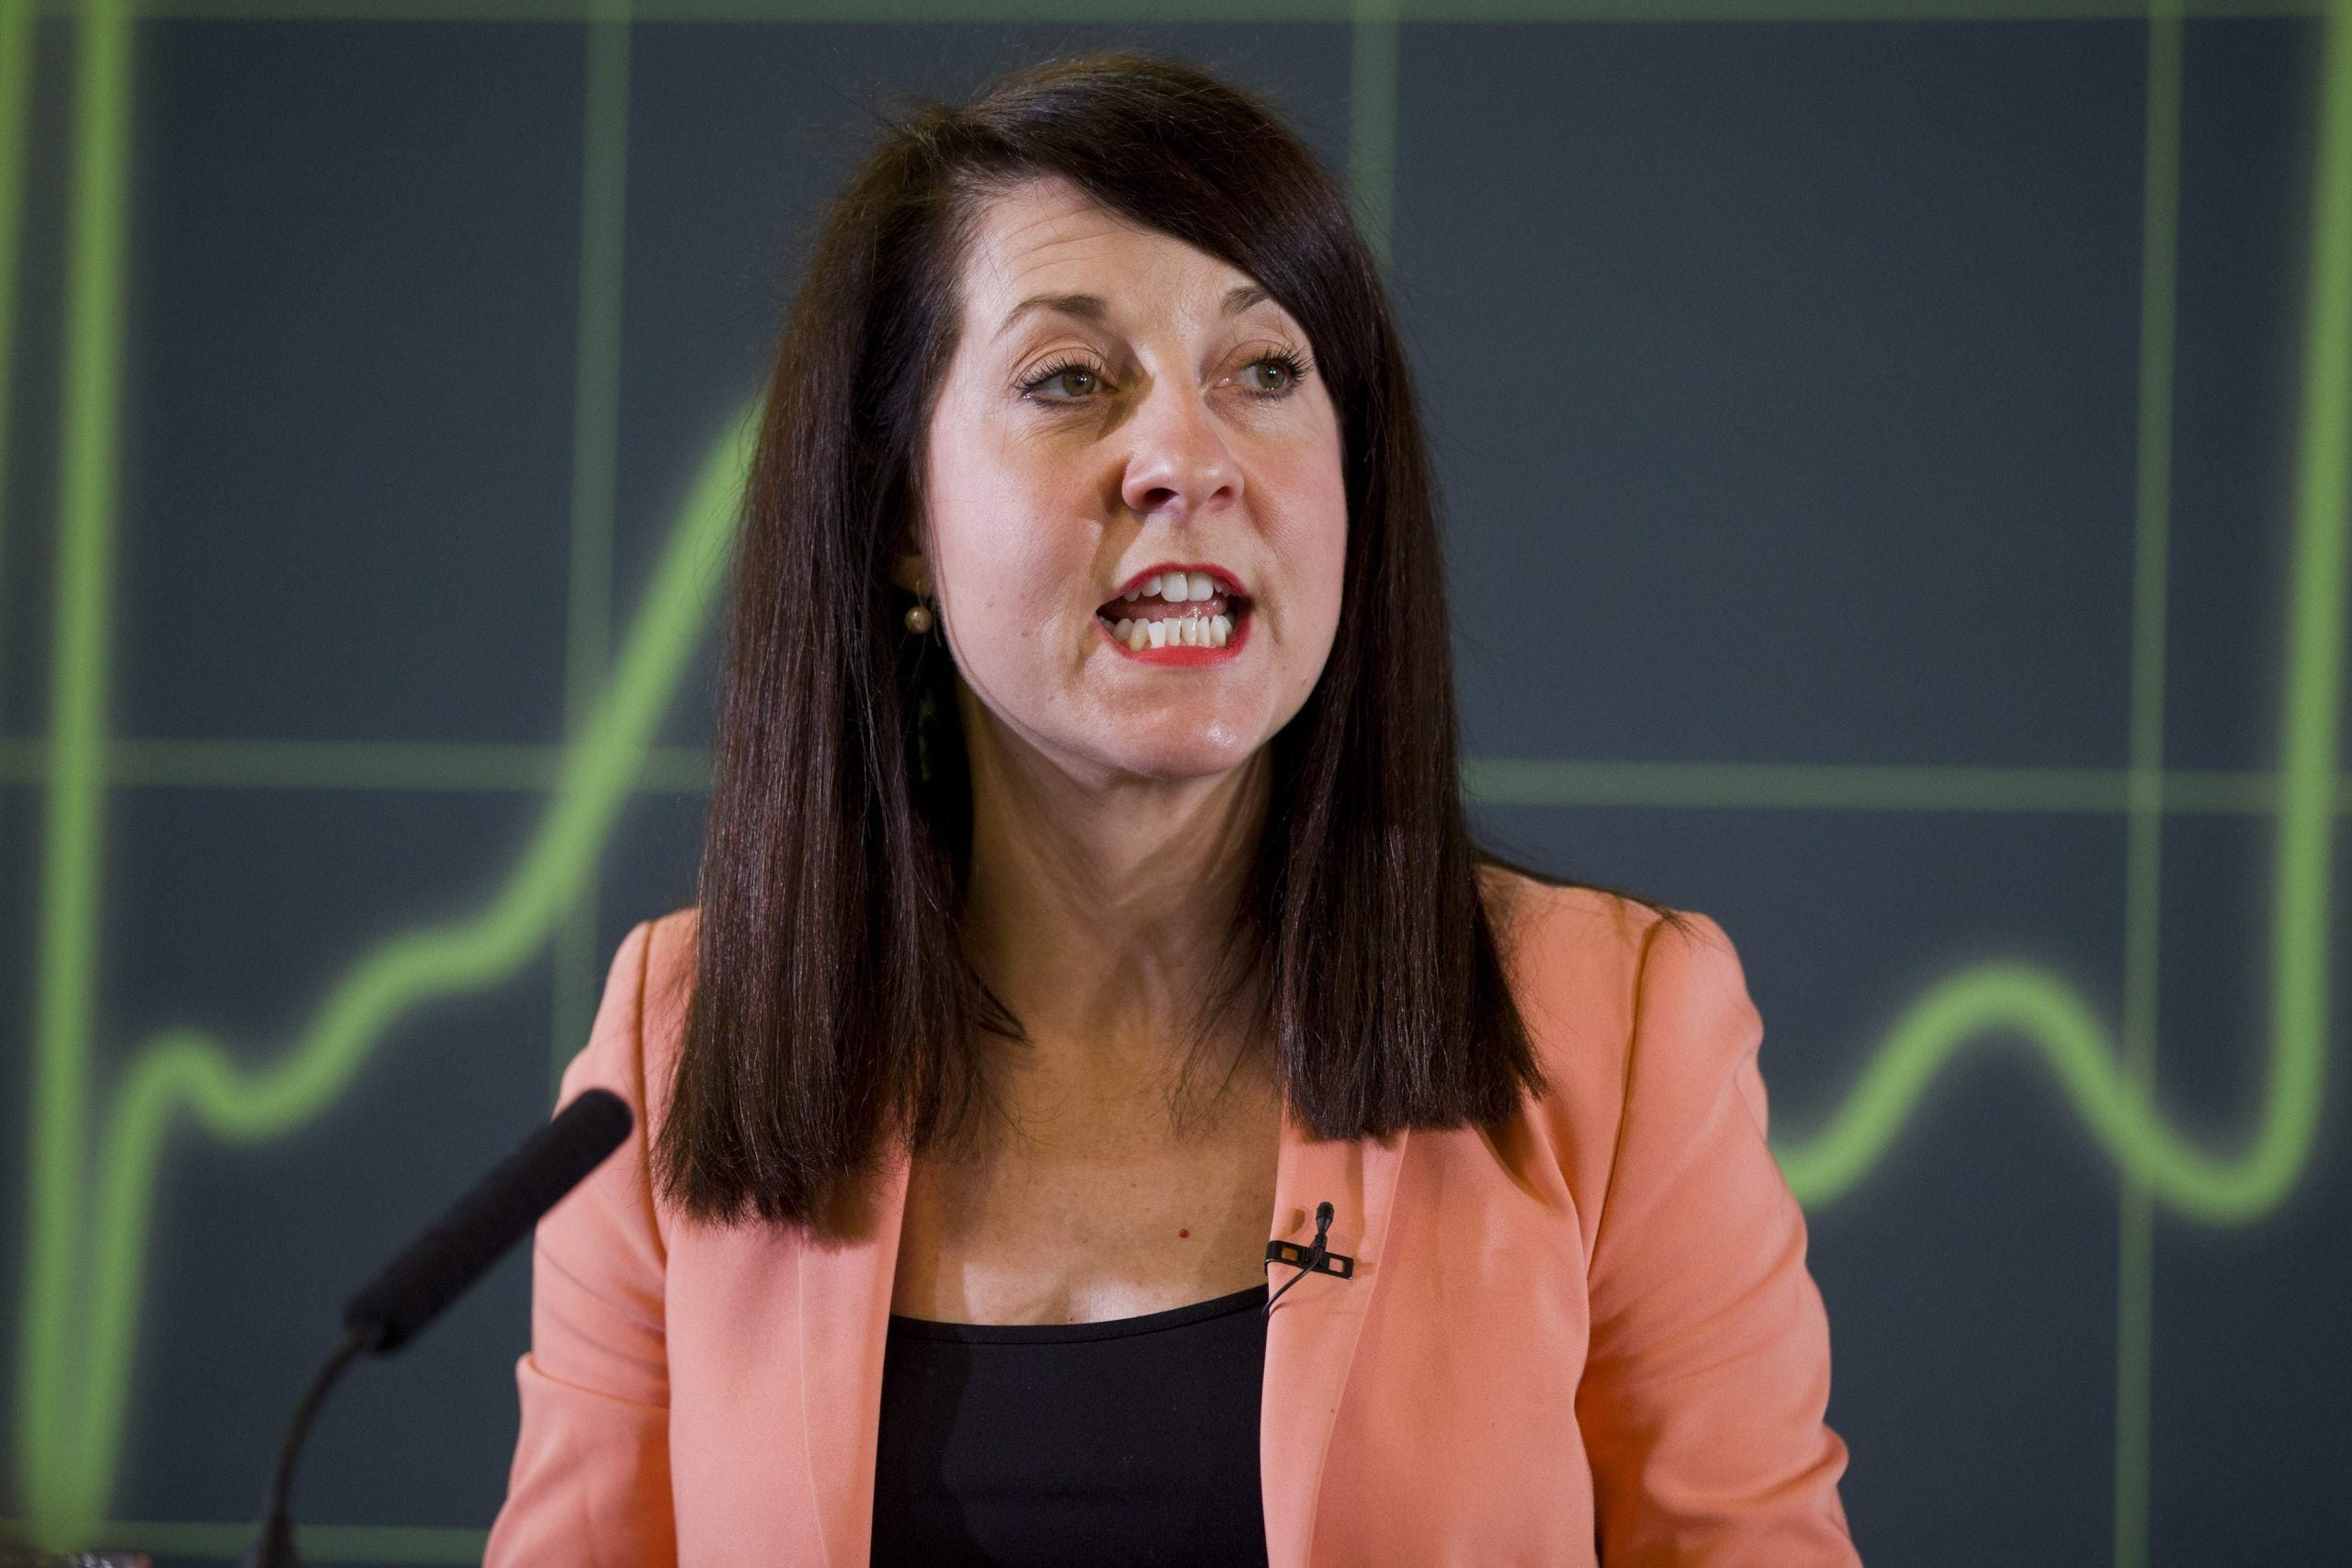 I'm backing Liz Kendall for one reason - because she can beat the Conservatives